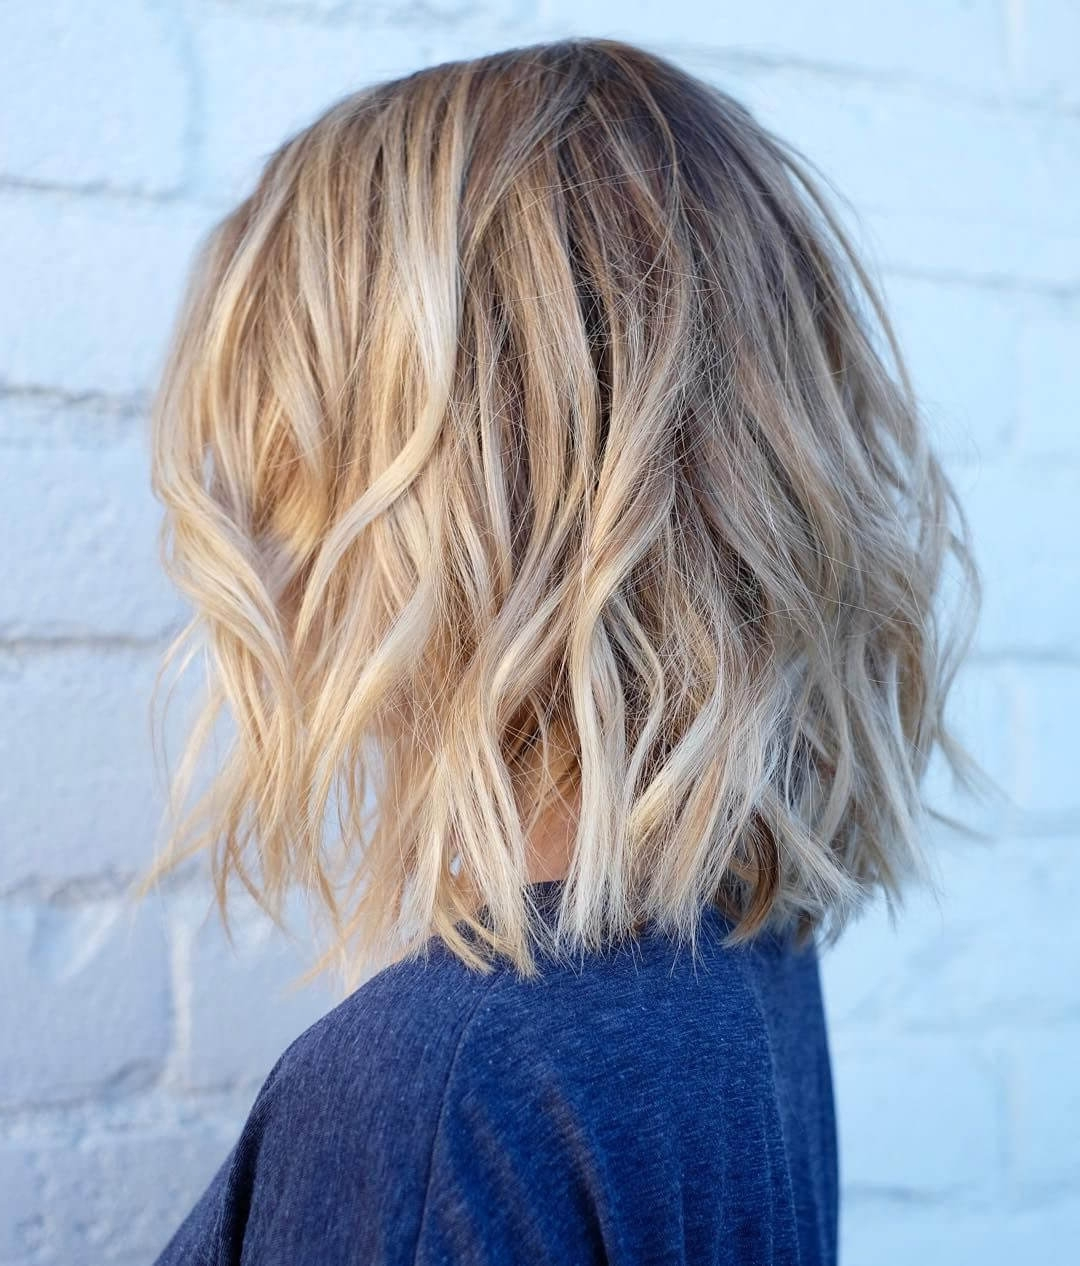 50 Fresh Short Blonde Hair Ideas To Update Your Style In 2018 Inside Most Up To Date Caramel Blonde Lob With Bangs (View 5 of 20)